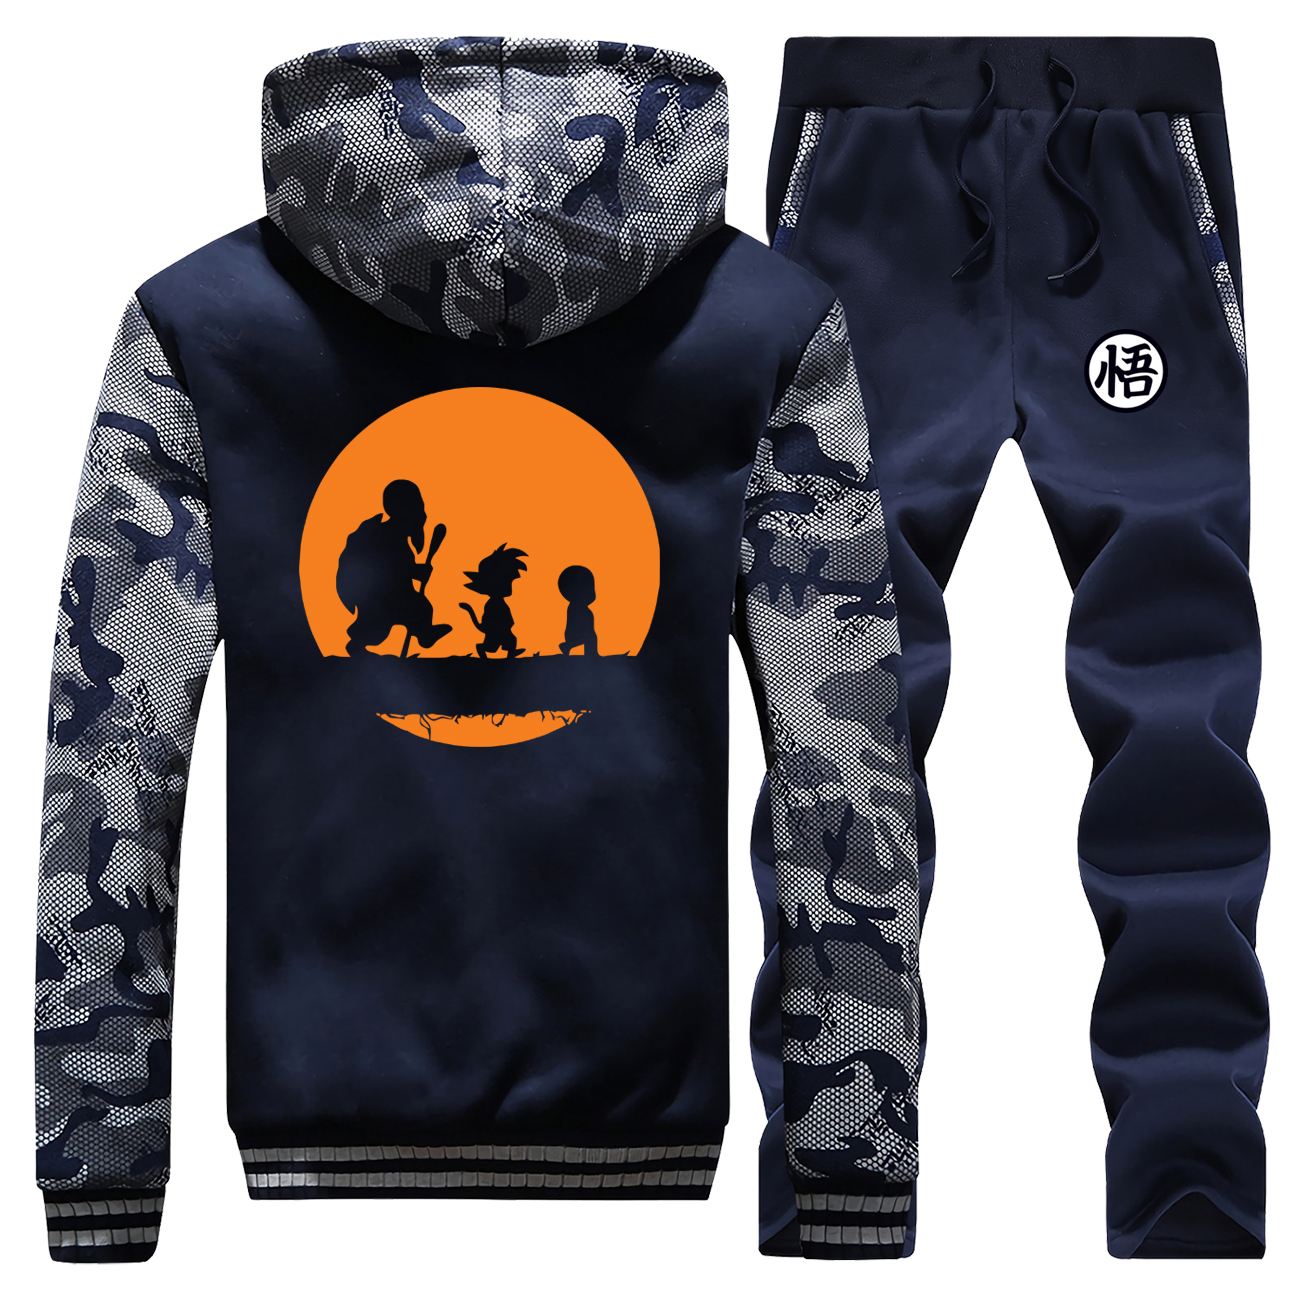 2019 Winter Hot Sale Cartoon Dragon Ball Japan Anime Men Camouflage Hip Hop Sportswear Suit Warm Jackets+Sweatpants 2 Piece Set